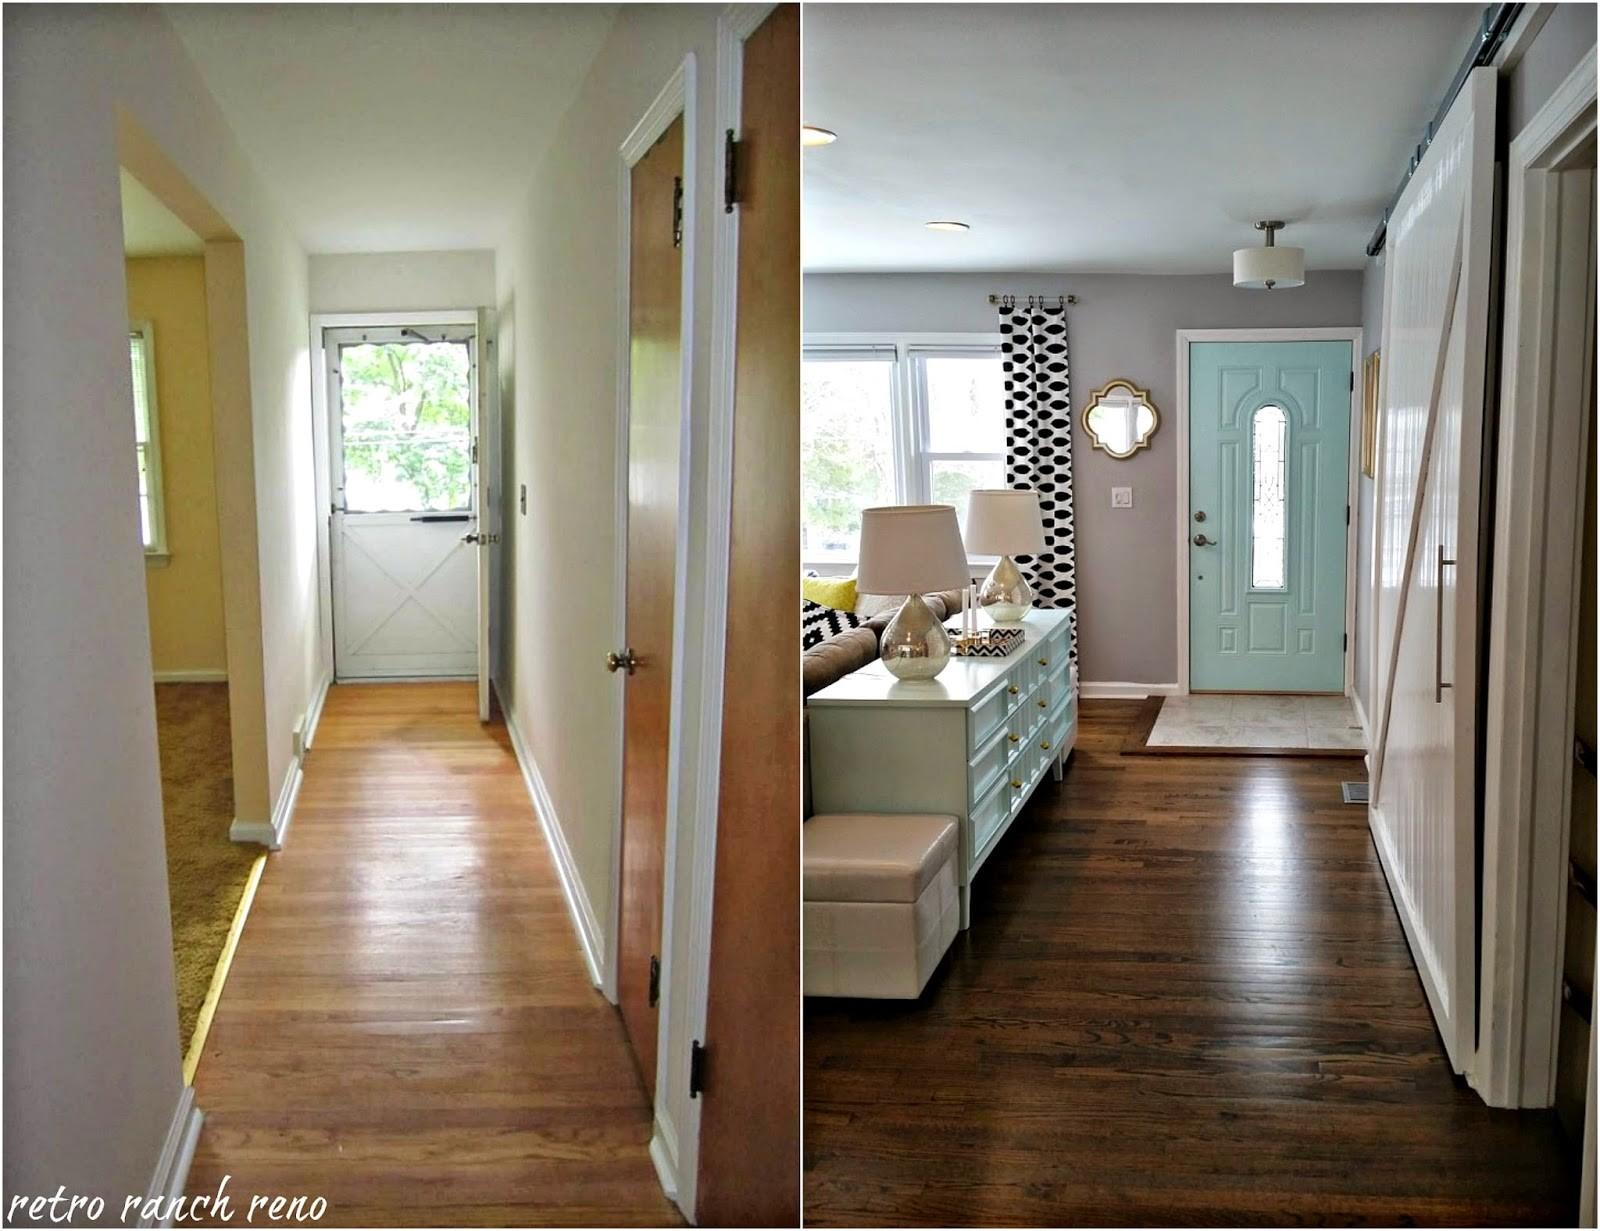 Retro Ranch Reno Our Rancher Before After Entrance